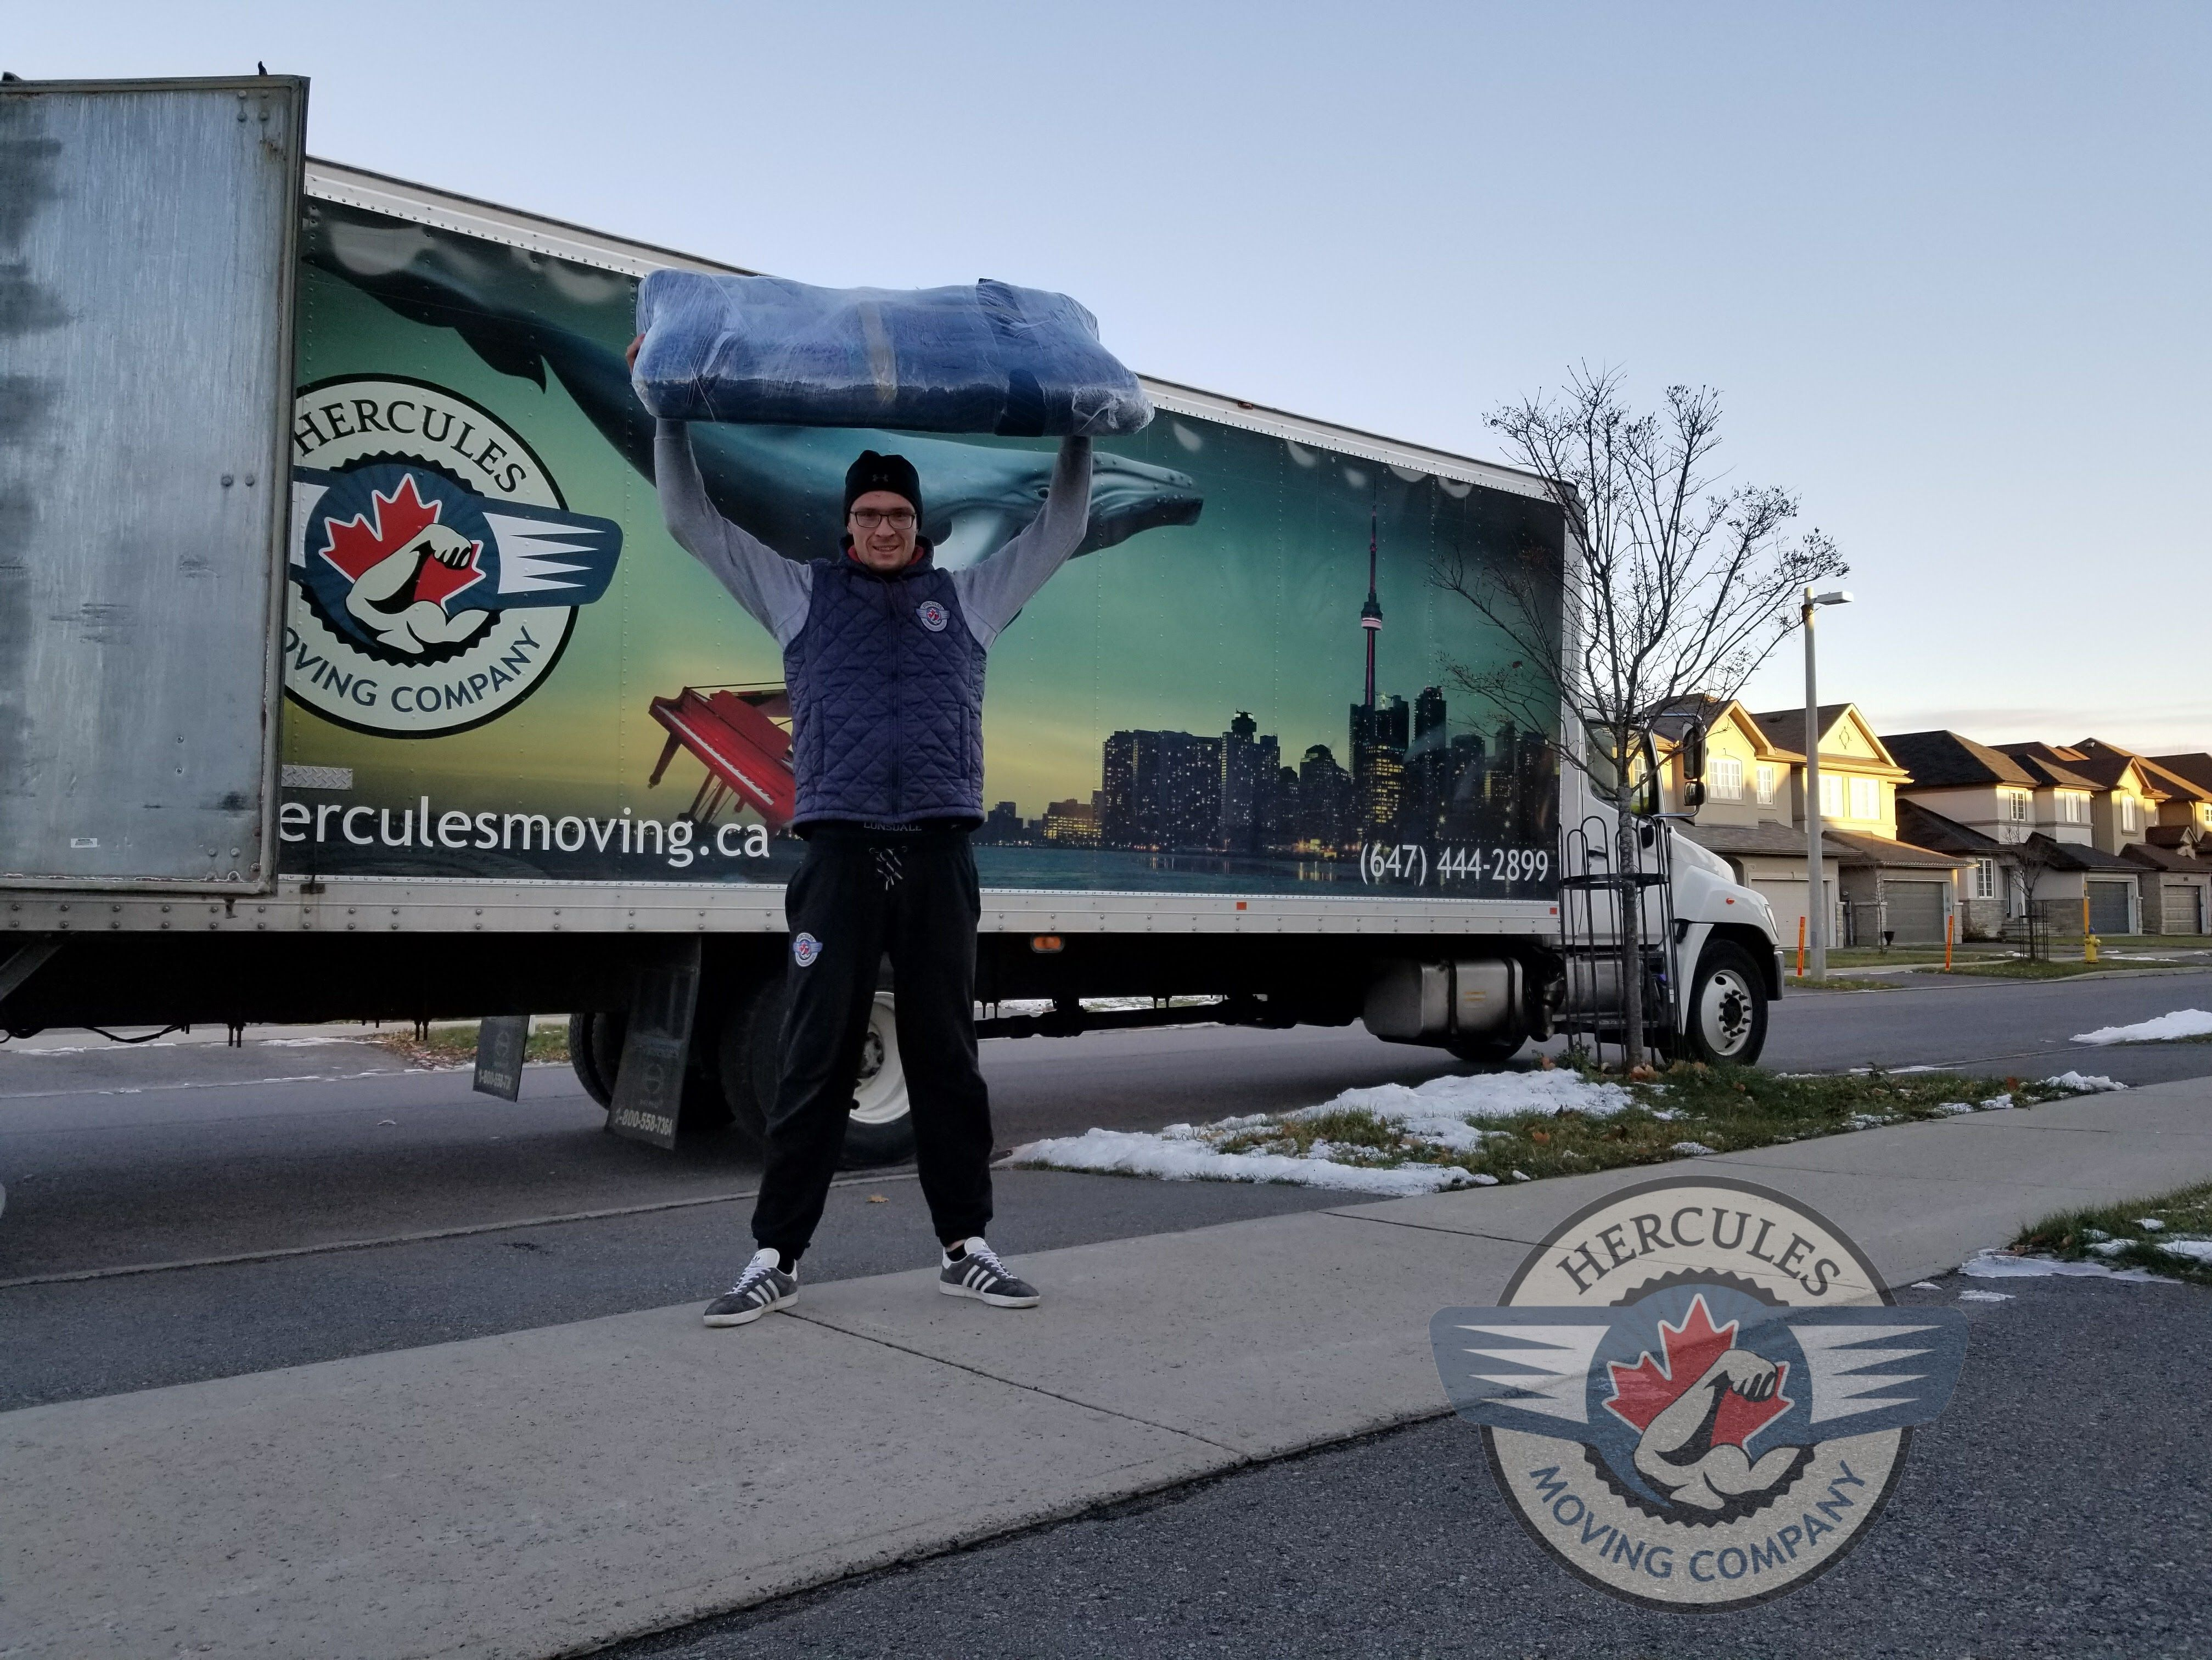 Exceptionnel Hercules Moving Company Inc Offers Variety Of #Local #Moving #Services In  #GTA